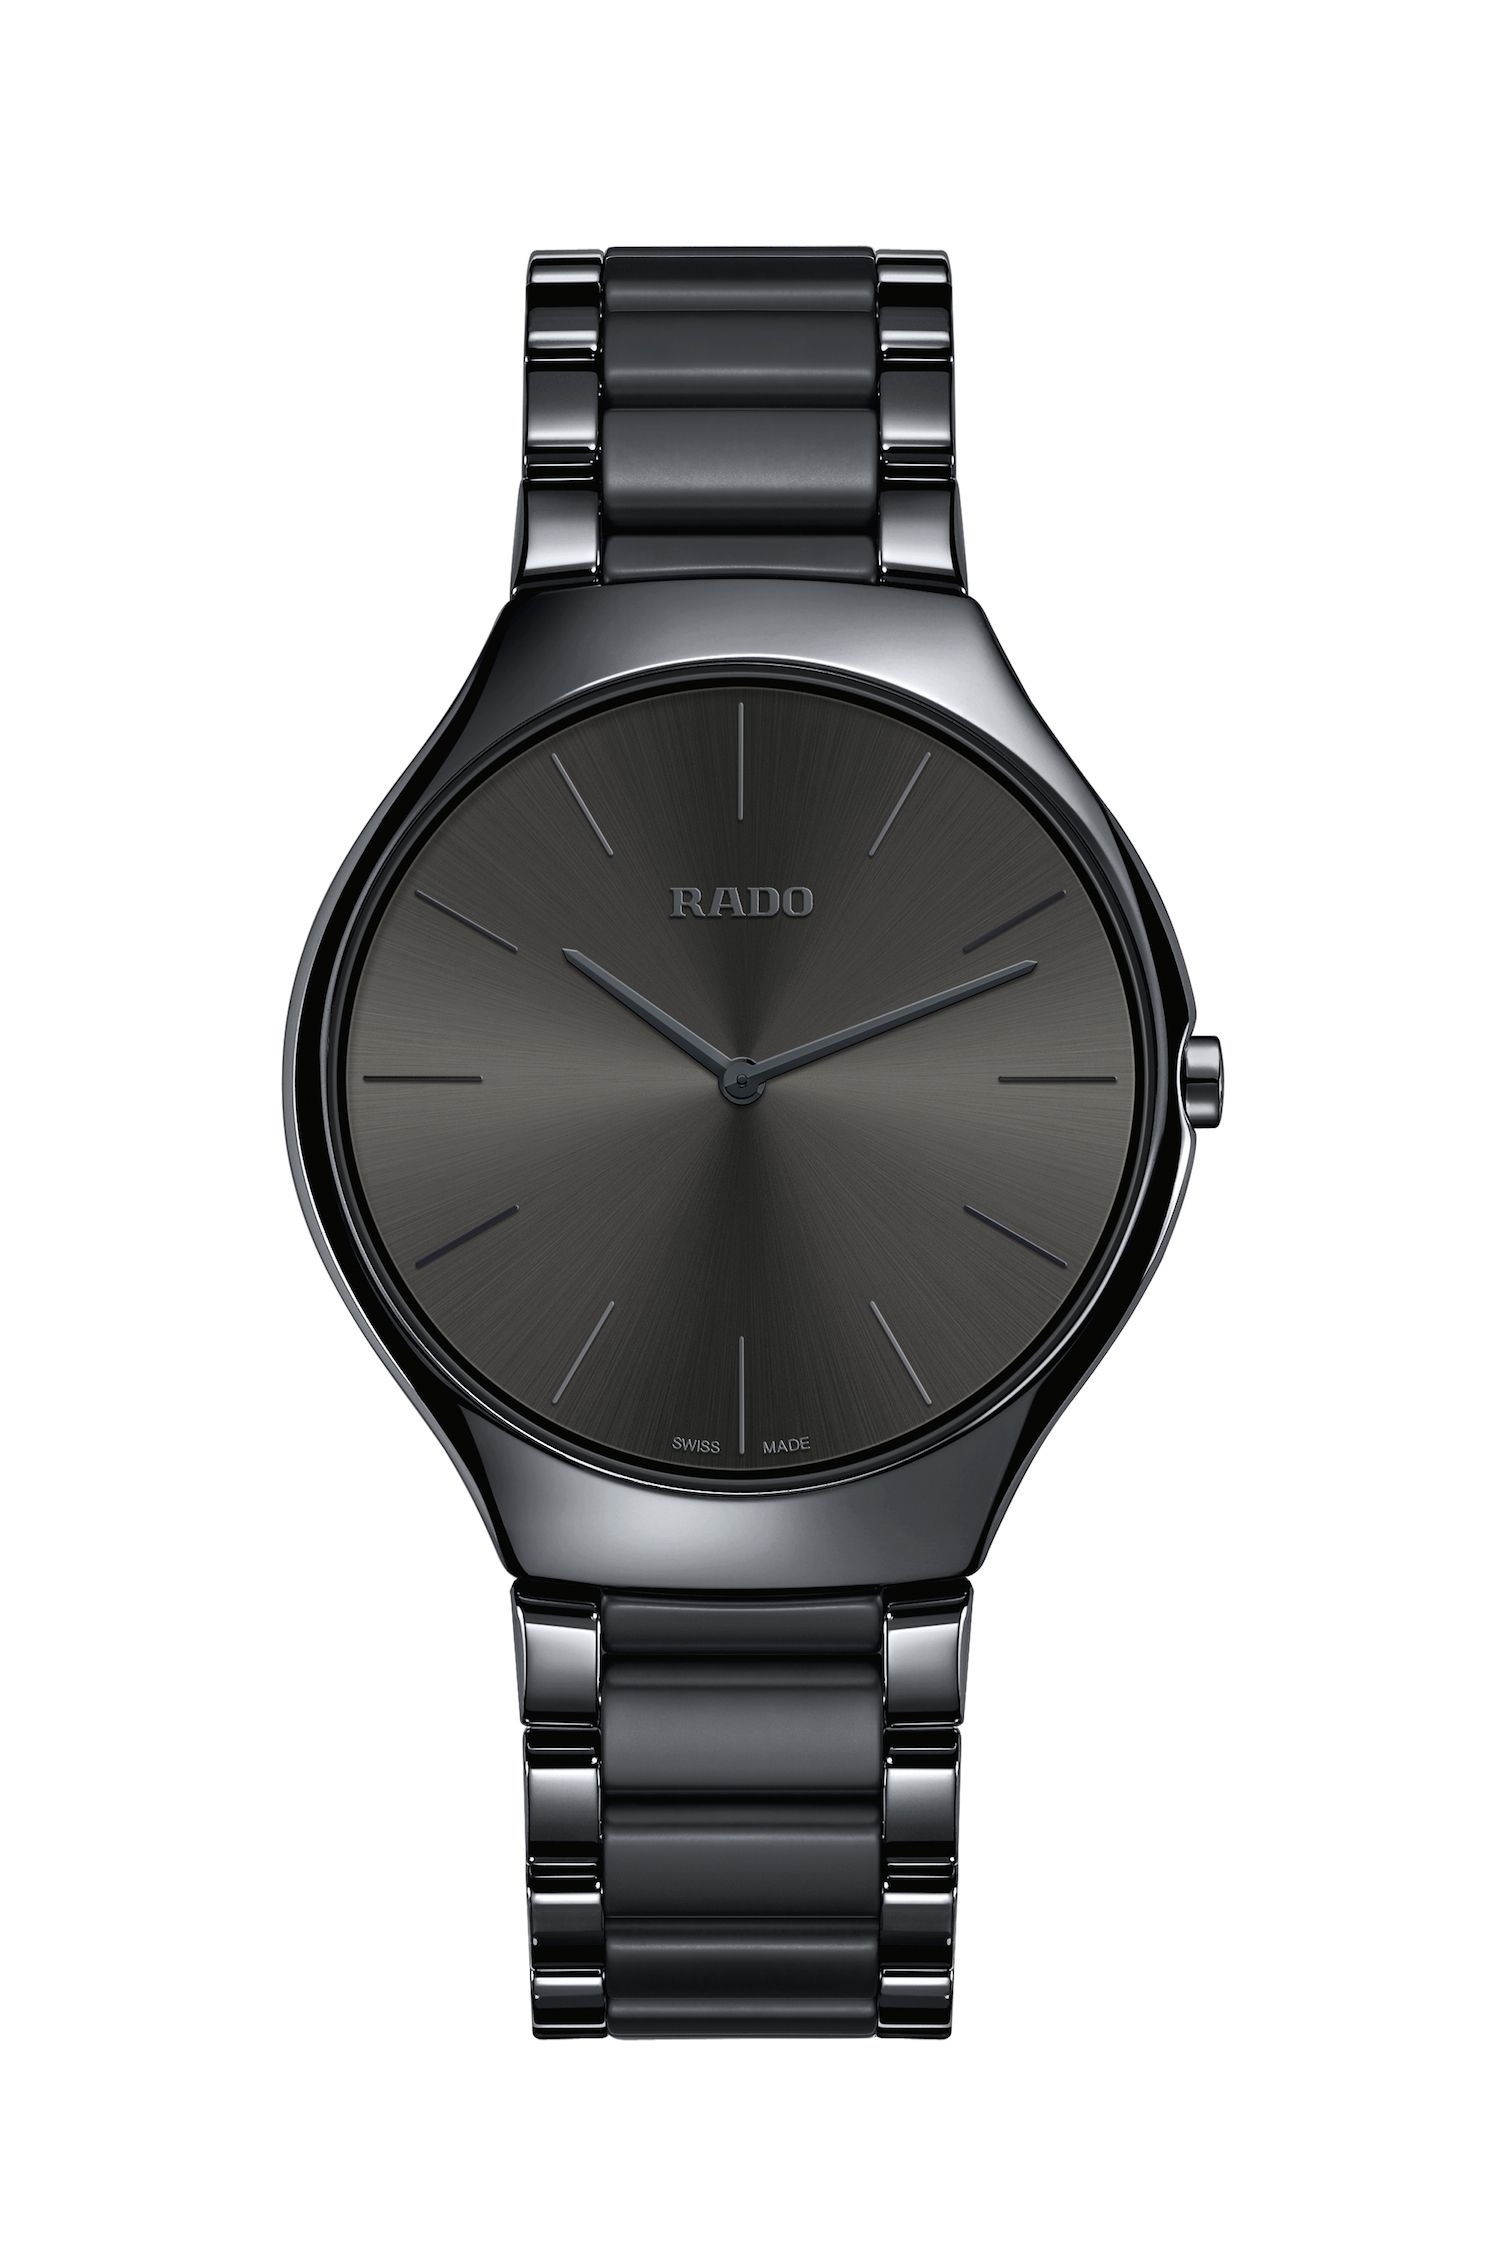 "<p>Rado, best known for its innovative ceramic watches, added four new colors (blue, green, gray, and brown) to the True Thinline collection for 2017. Their slimmest timepiece yet measures&nbsp&#x3B;a mere 4.9mm&nbsp&#x3B;and is&nbsp&#x3B;super lightweight, scratch resistant, and, most interestingly, hypoallergenic. Plus, when is top-to-bottom charcoal <em data-redactor-tag=""em"" data-verified=""redactor"">not</em><span class=""redactor-invisible-space"" data-verified=""redactor"" data-redactor-tag=""span"" data-redactor-class=""redactor-invisible-space""> in style?</span>